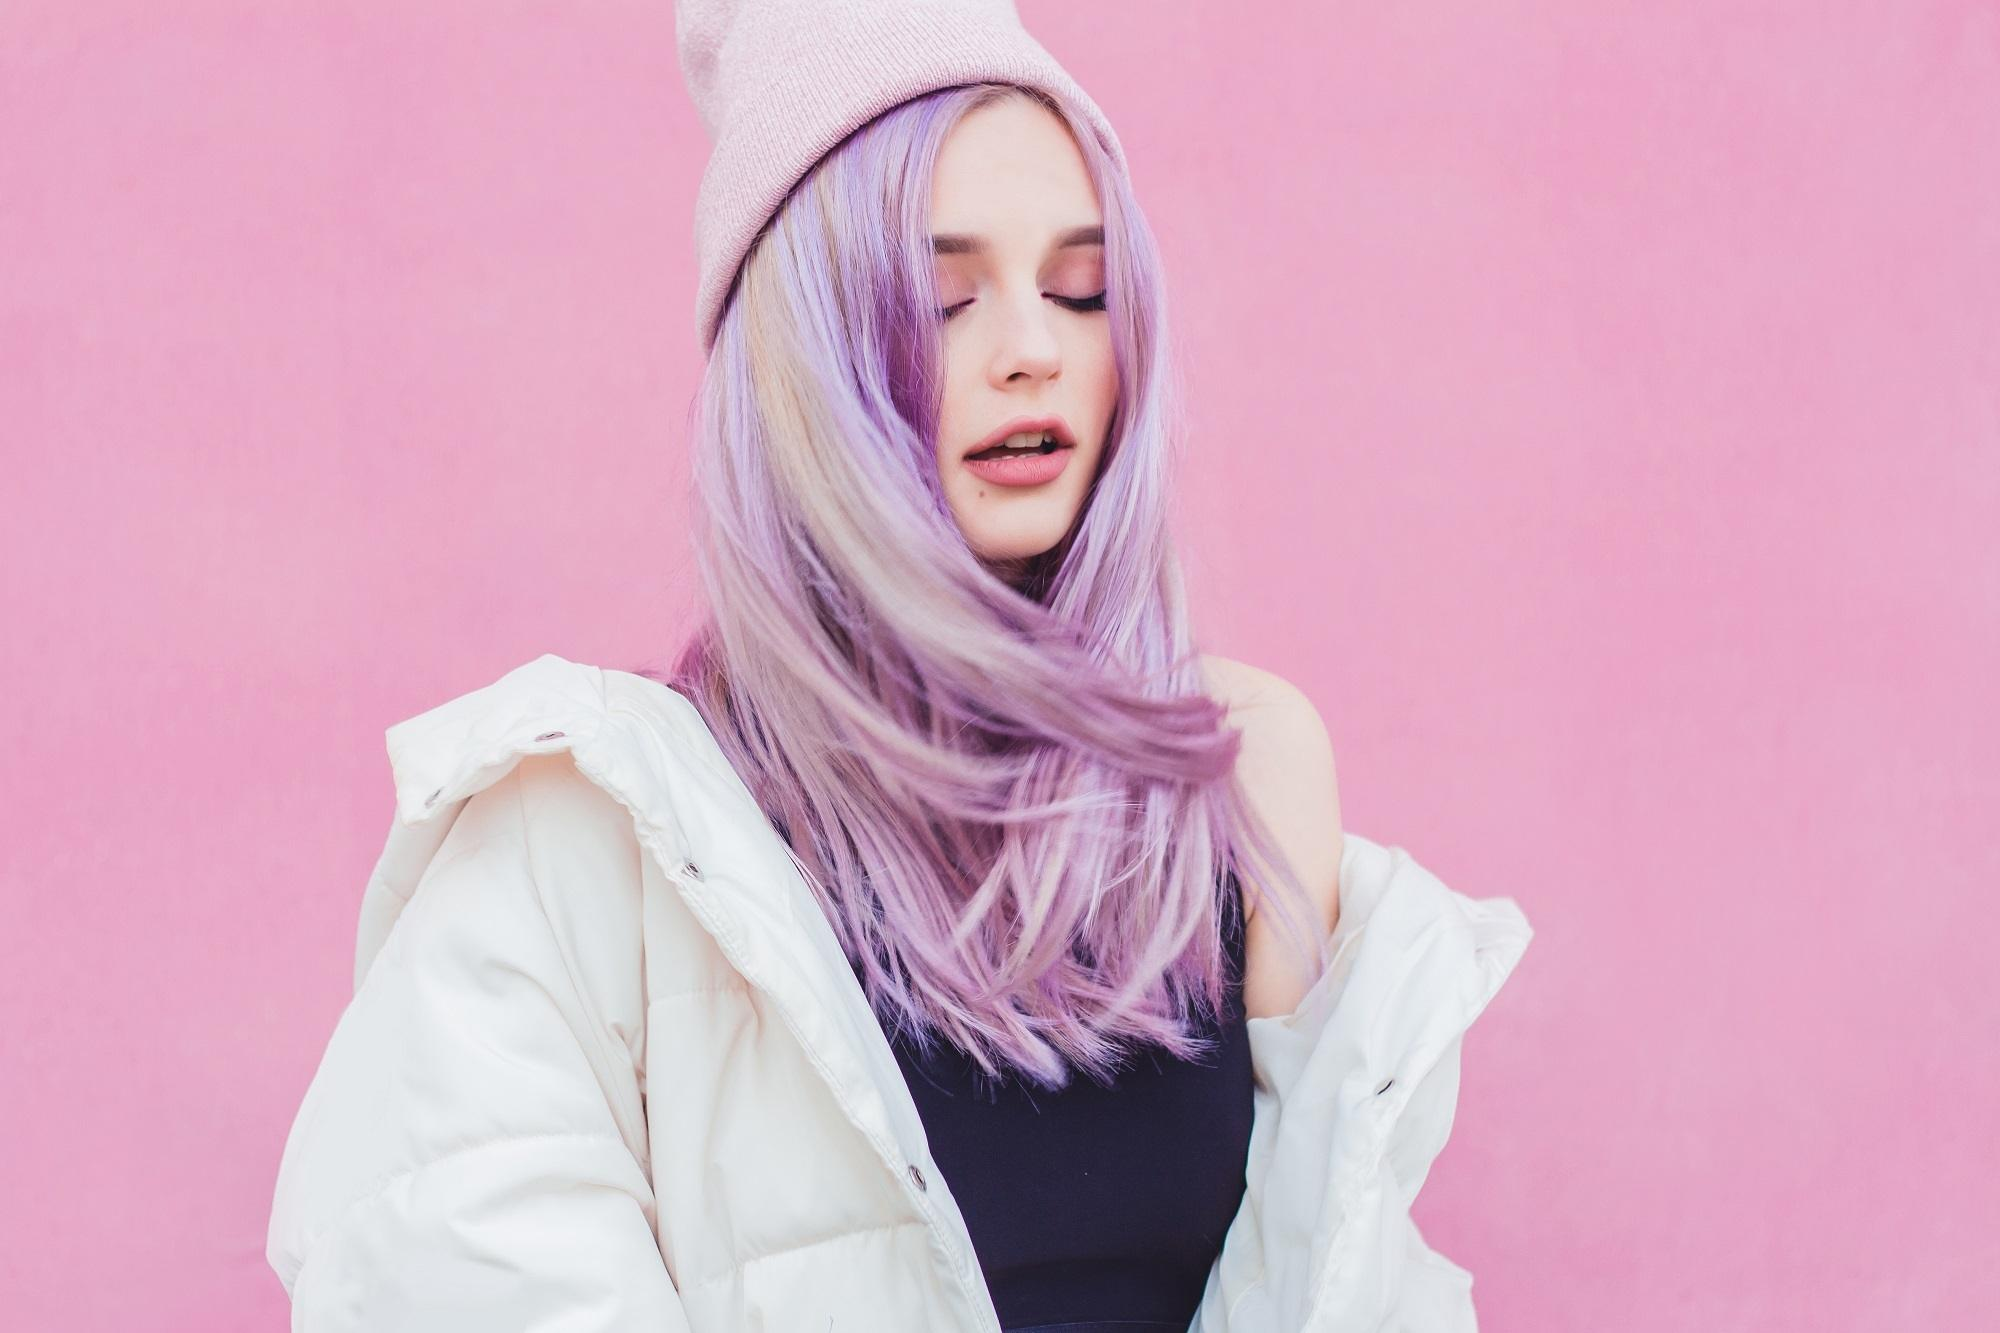 Hair color for fair skin: White woman with long lilac hair wearing a white jacket and white bonnet against a pink background